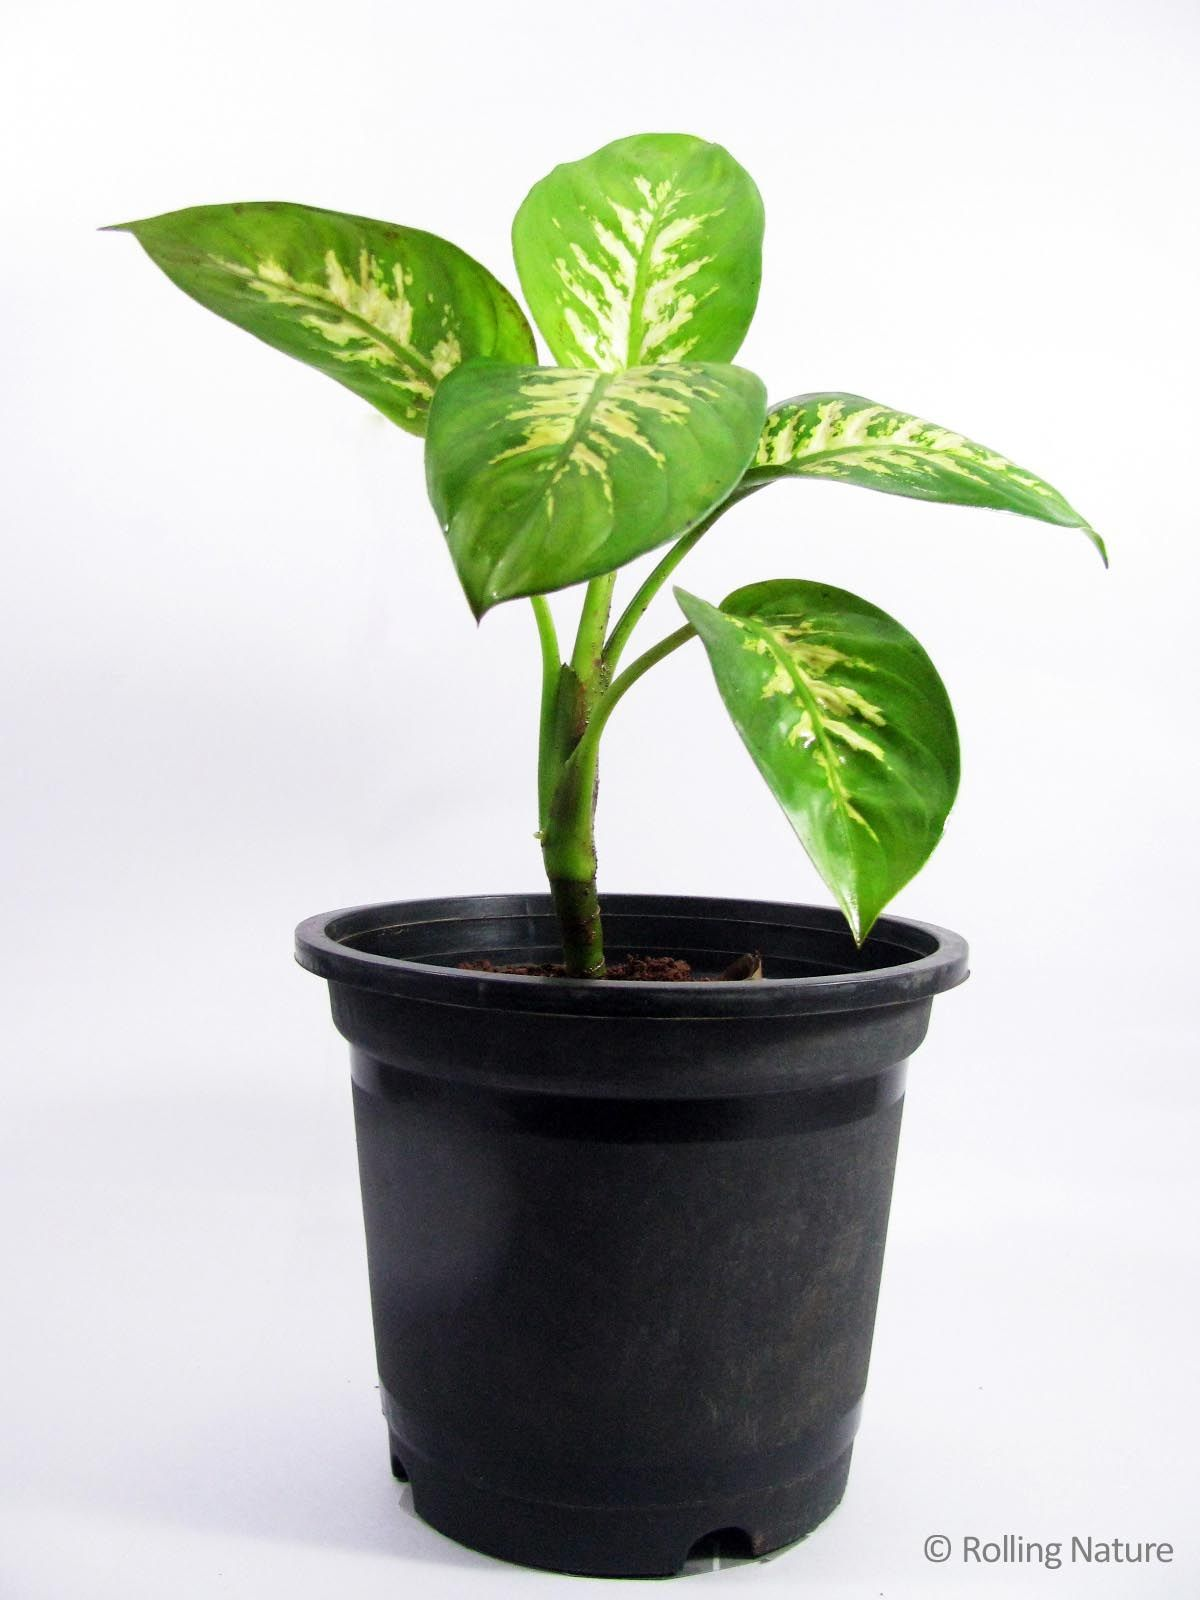 Large Leaf Houseplant Dieffenbachia A Broad Leaved Foliage Plant With Thick